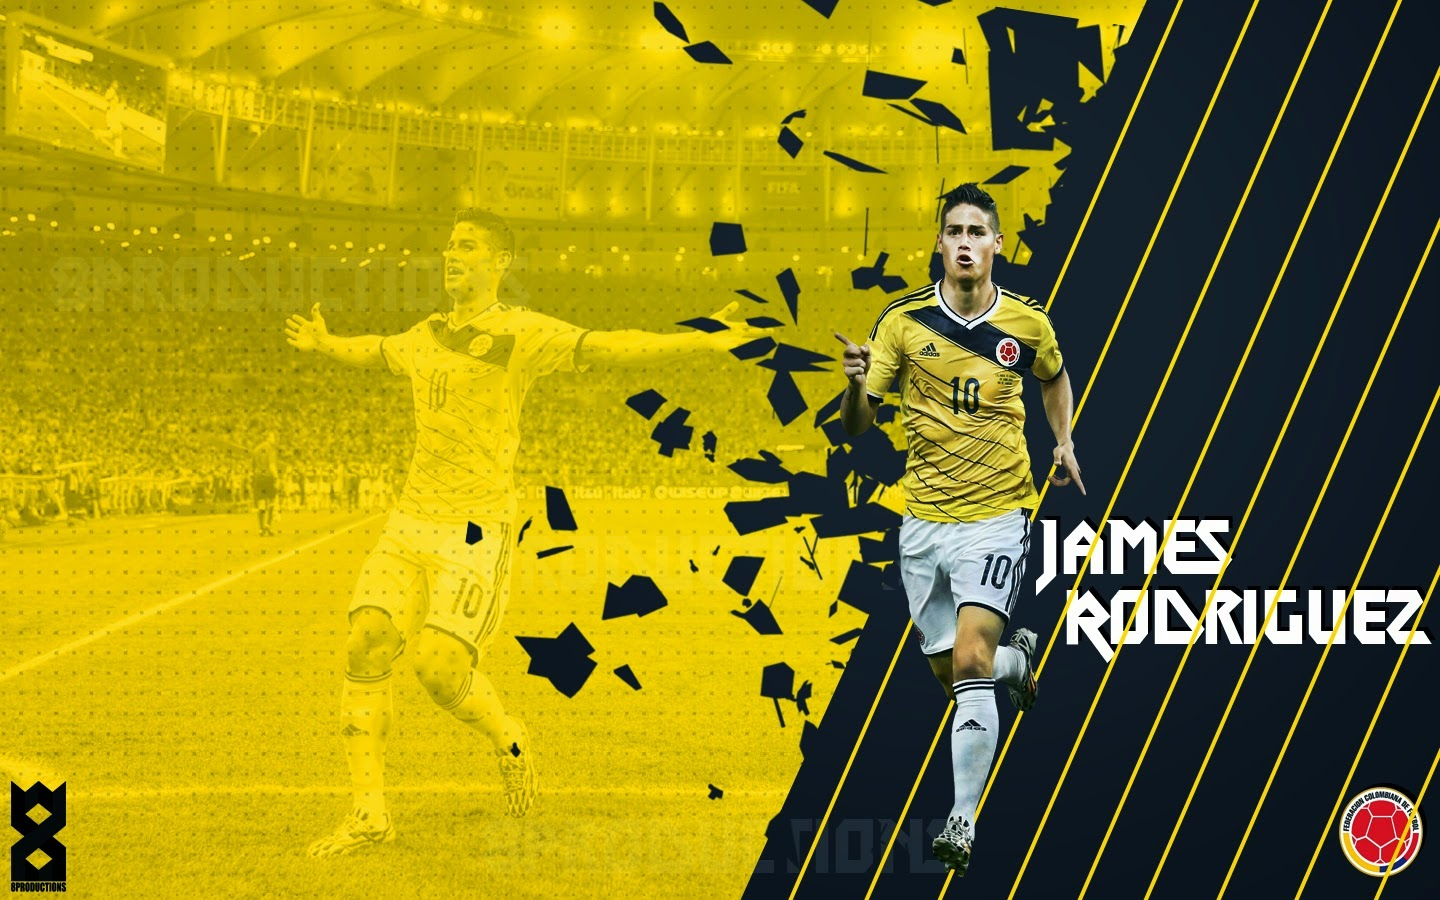 James Rodriguez Wallpaper HD